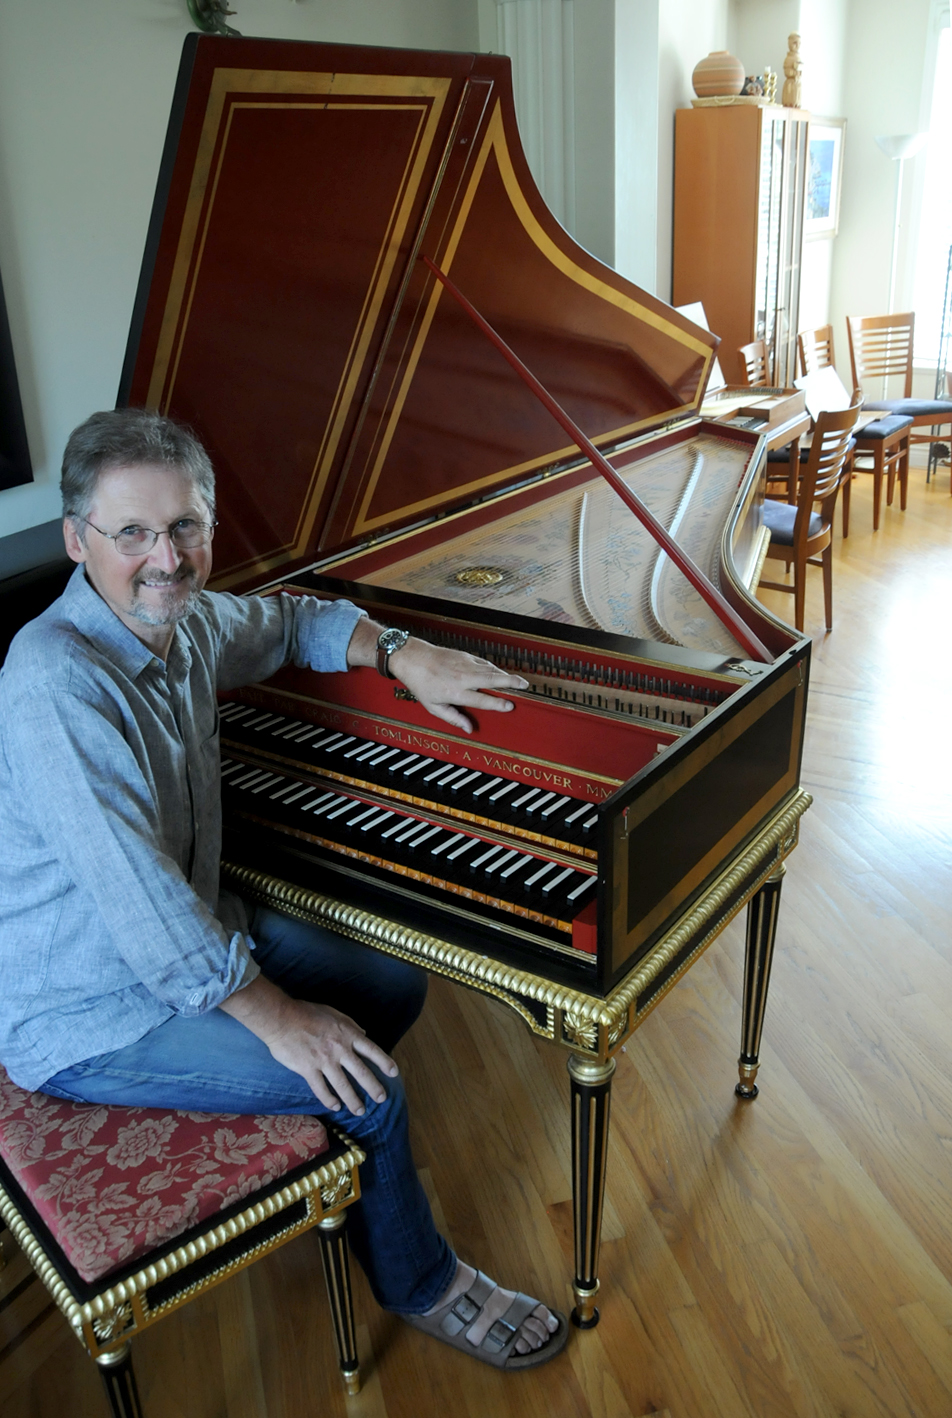 Craig Tomlinson sitting at one of his harpsichords Photo by Mike Wakefield